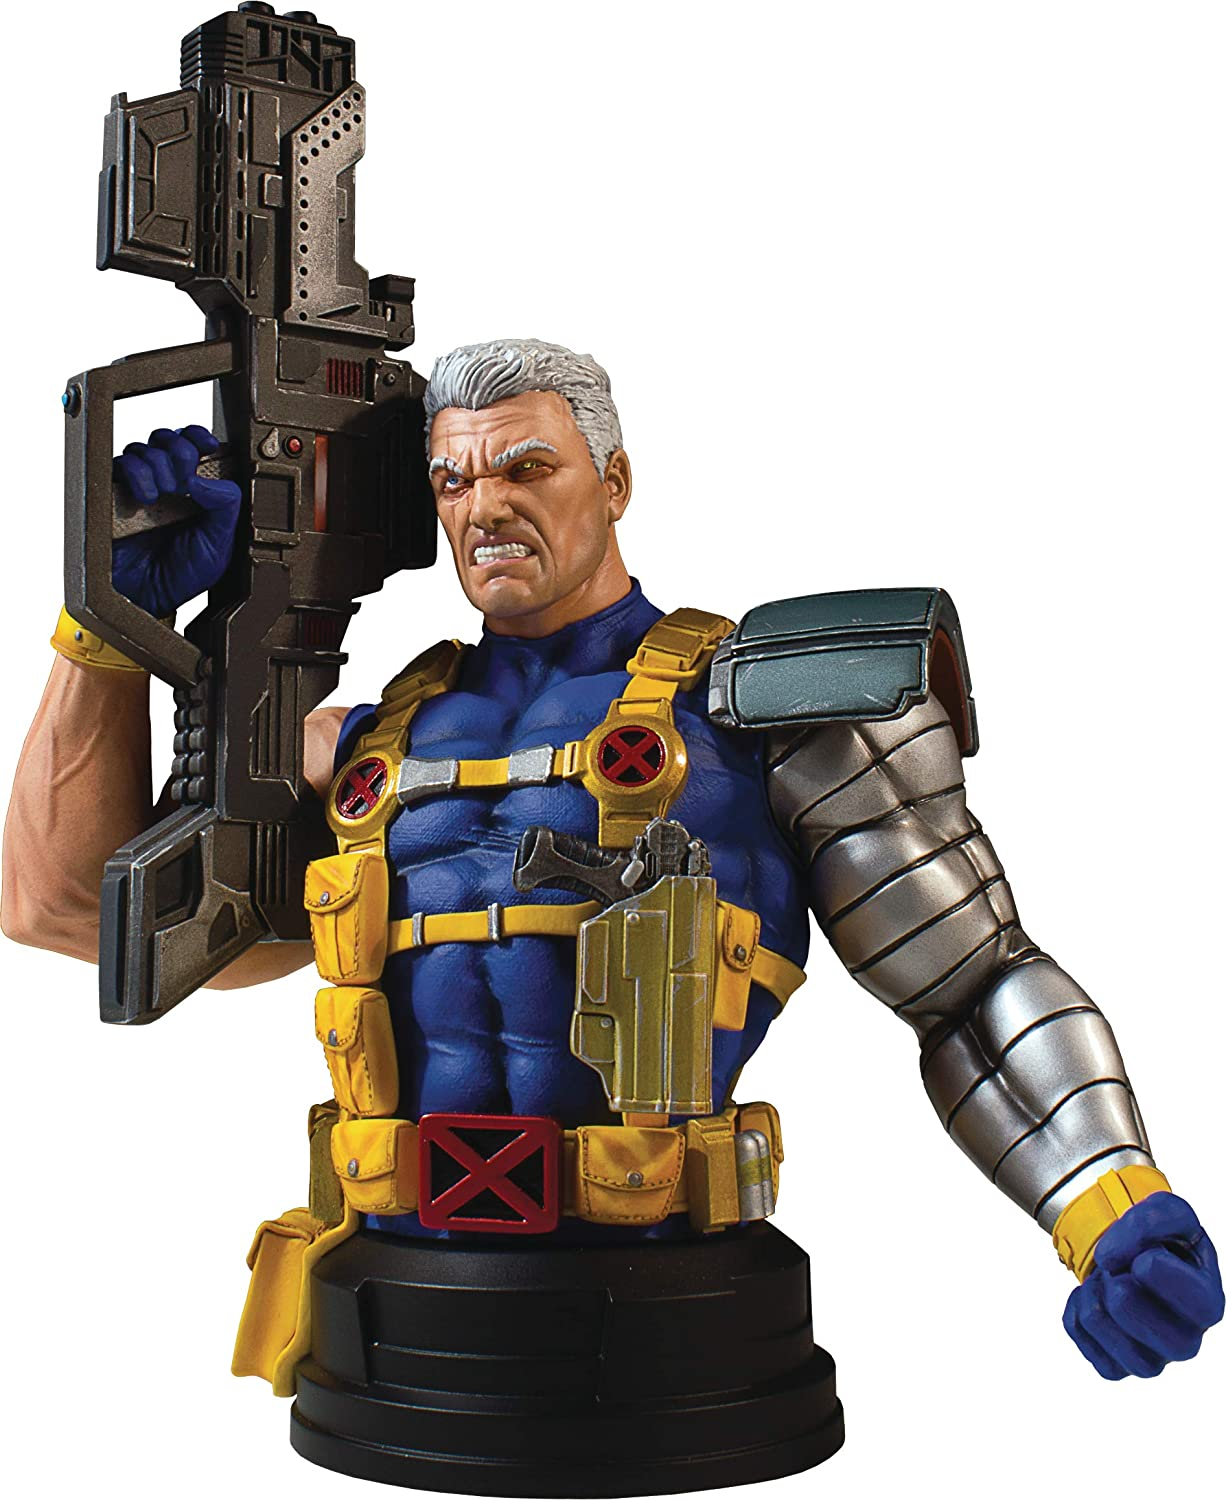 Cable Gentle Giant Marvel 1:6 Scale Mini Bust NOV182387